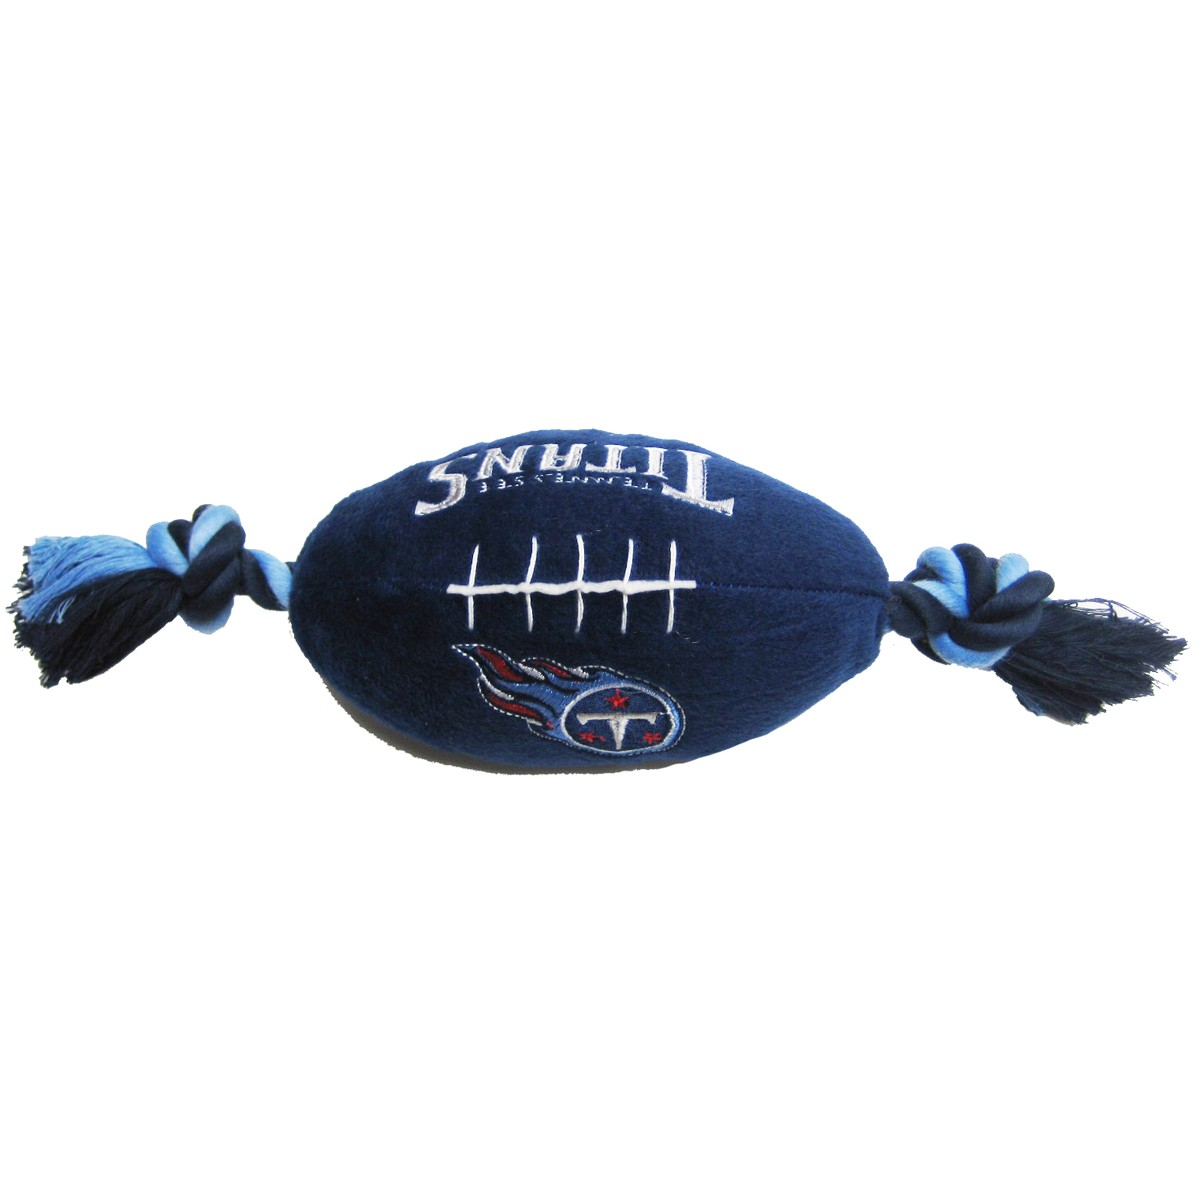 Hot Dog Tennessee Titans NFL Squeaker Football Dog Toy